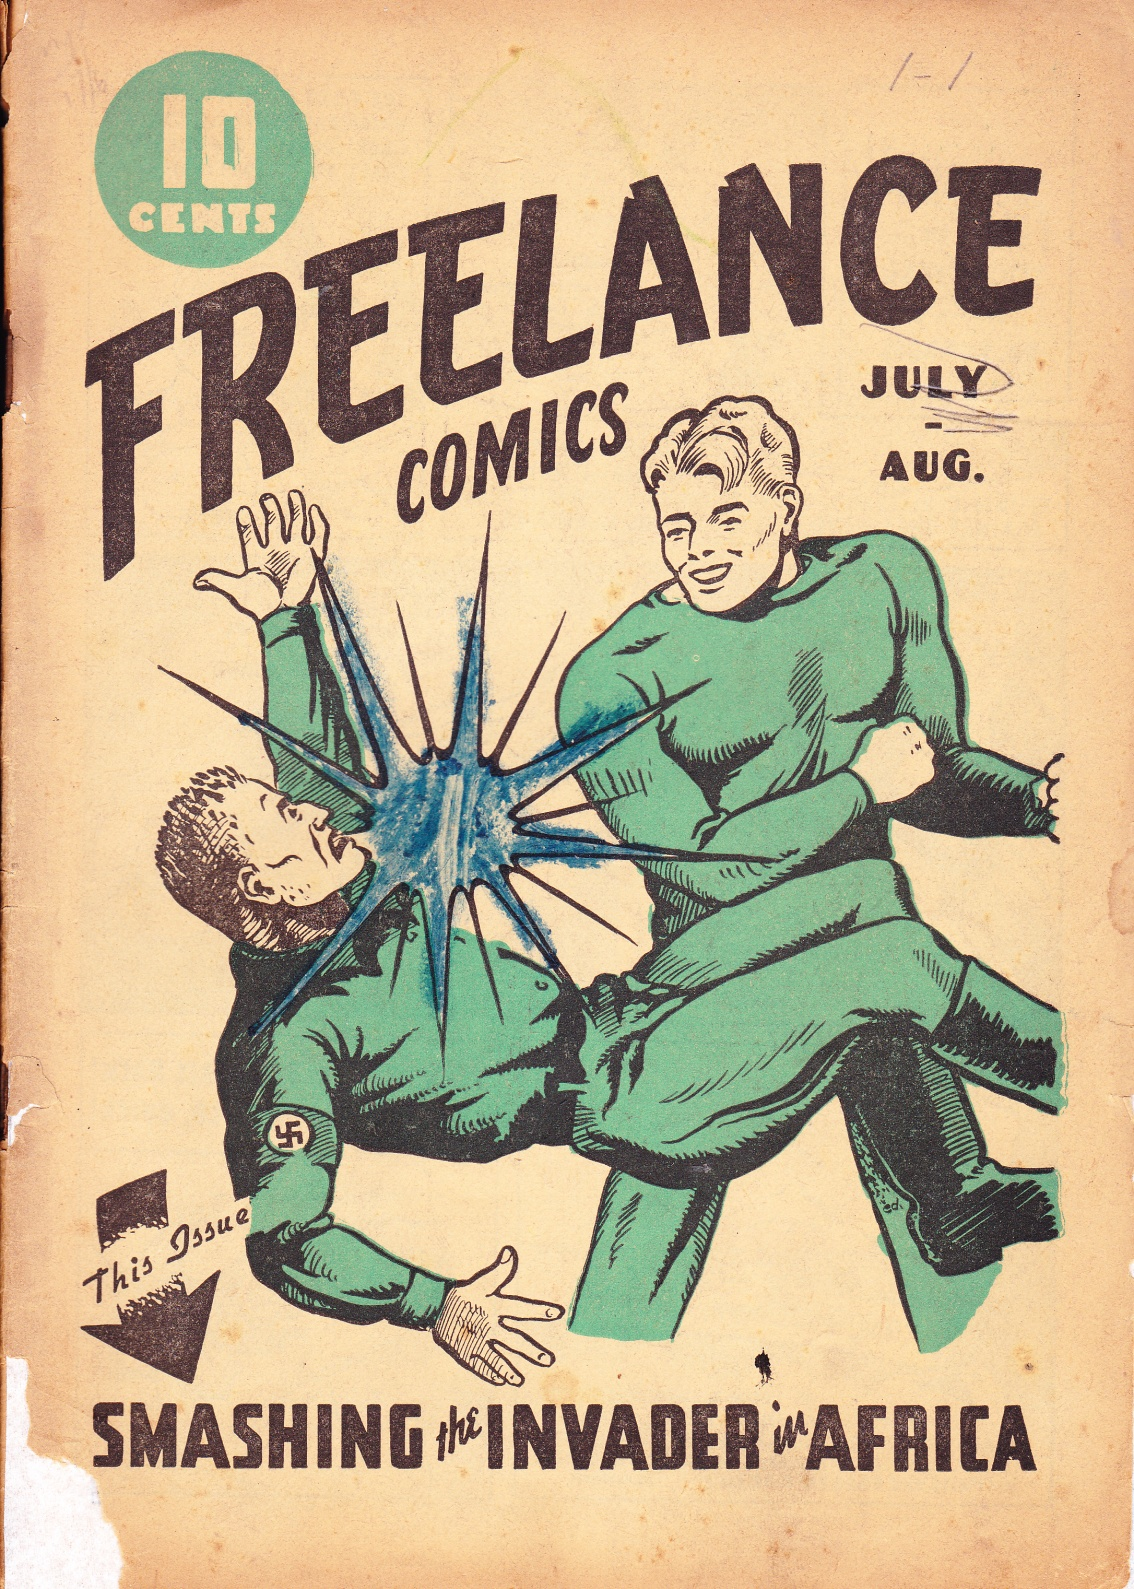 C:\Users\Robert\Documents\CARTOONING ILLUSTRATION ANIMATION\IMAGE CARTOON\IMAGE CARTOON F\FREELANCE Freelance Comics 1-1, July-Aug.  1941 fc.jpg